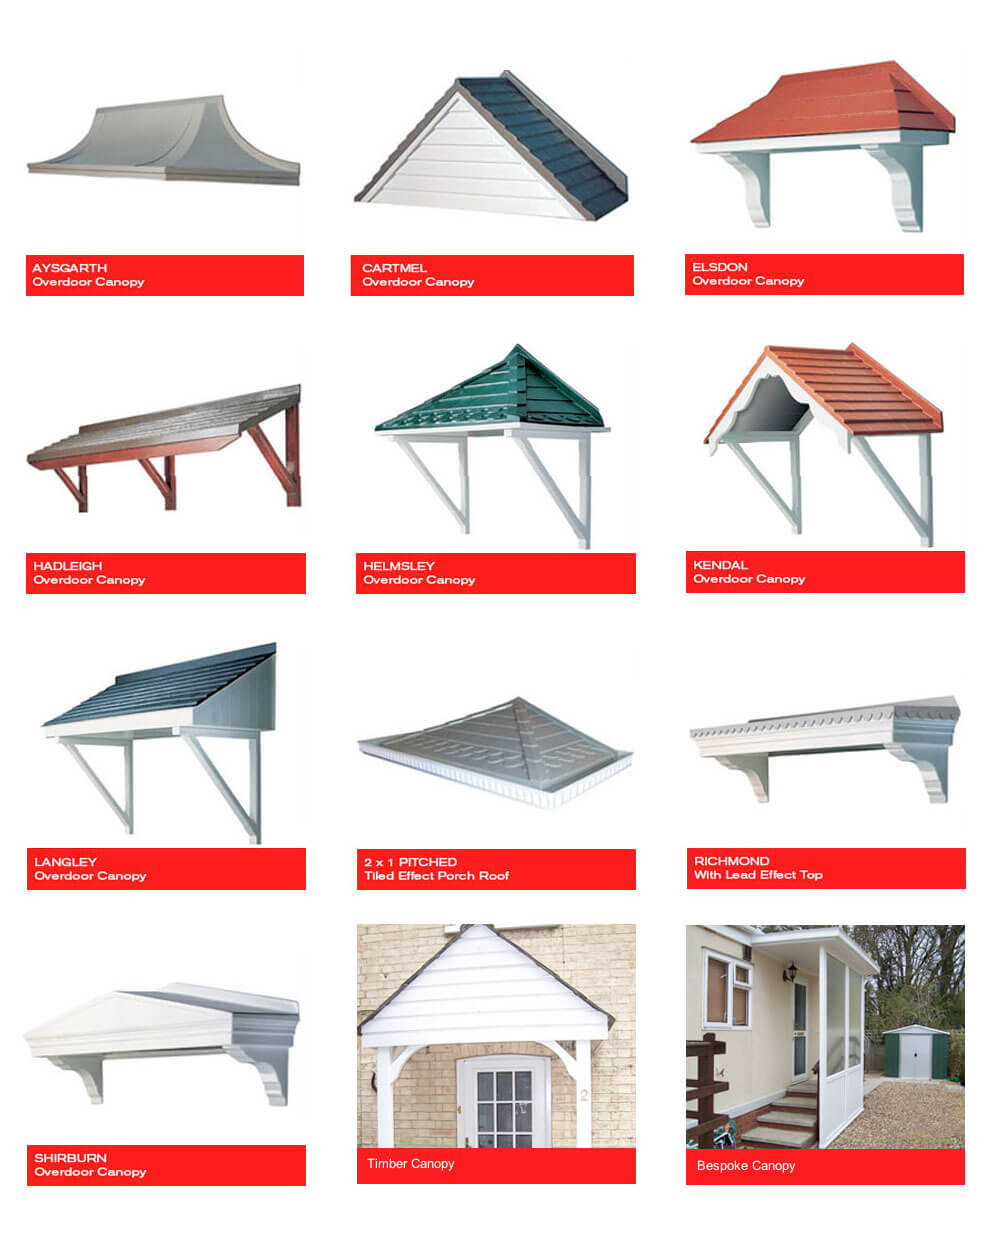 Doors Gallery Canopies. Doors_Gallery_Canopies  sc 1 st  Unicorn Windows & Doors Canopies | Supplier | Installer | Bedfordshire | Unicorn Windows